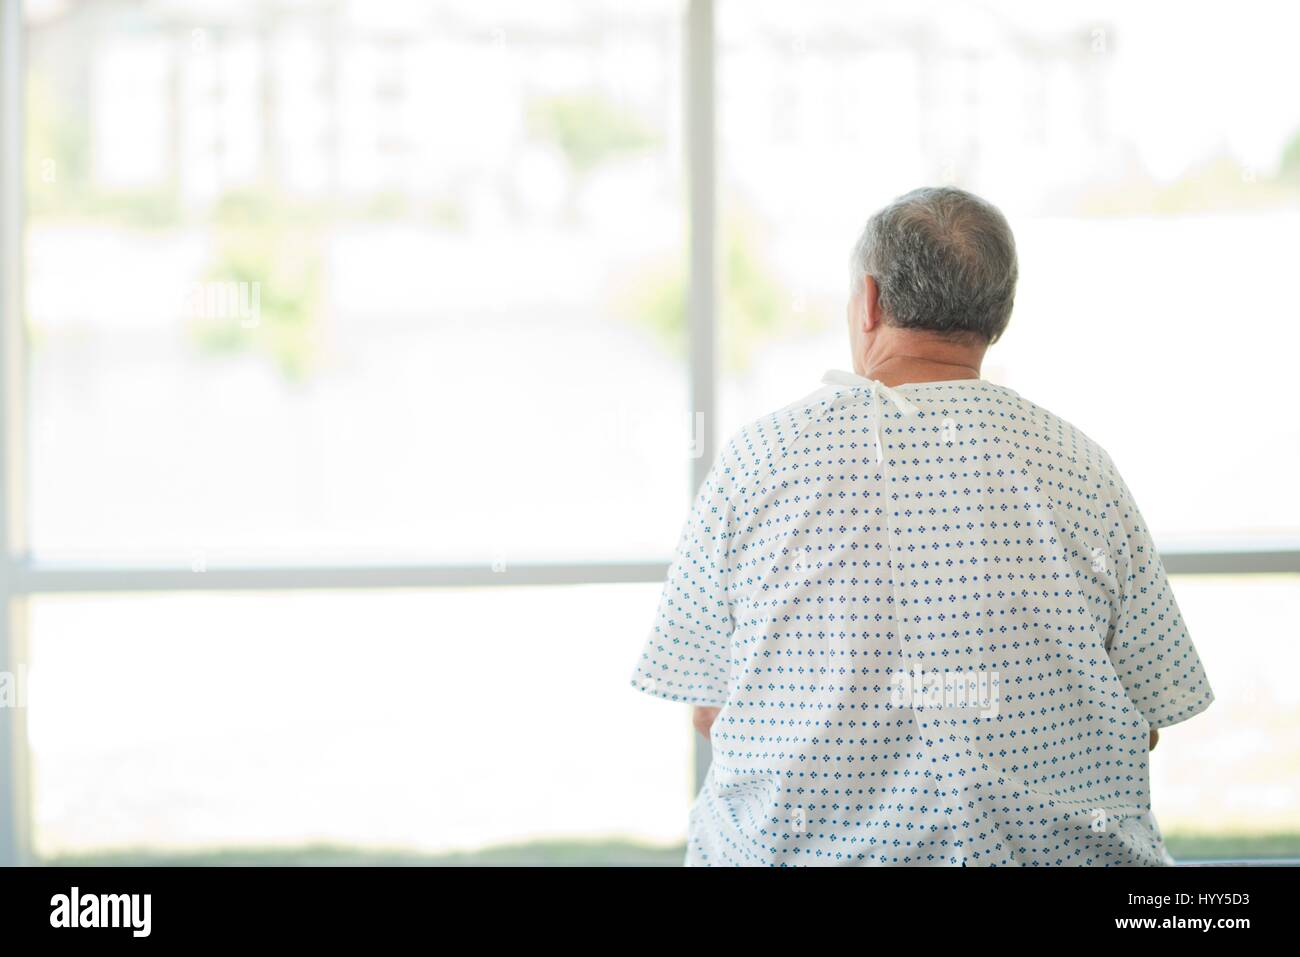 Man And Hospital Gown And Rear View Stock Photos & Man And Hospital ...